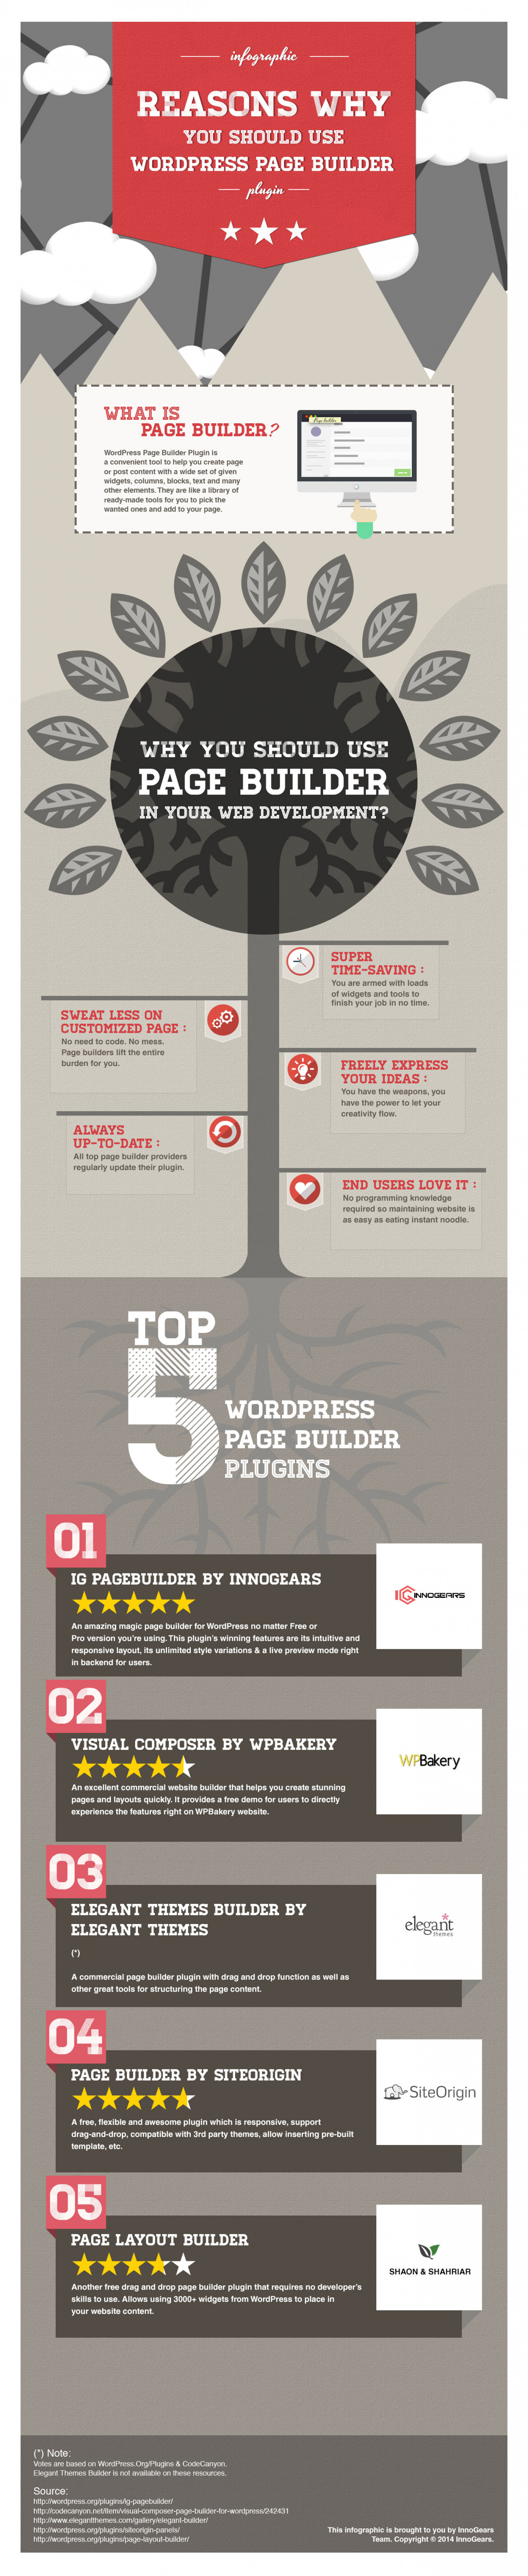 Reasons Why You Should Use WordPress Page Builder Infographic